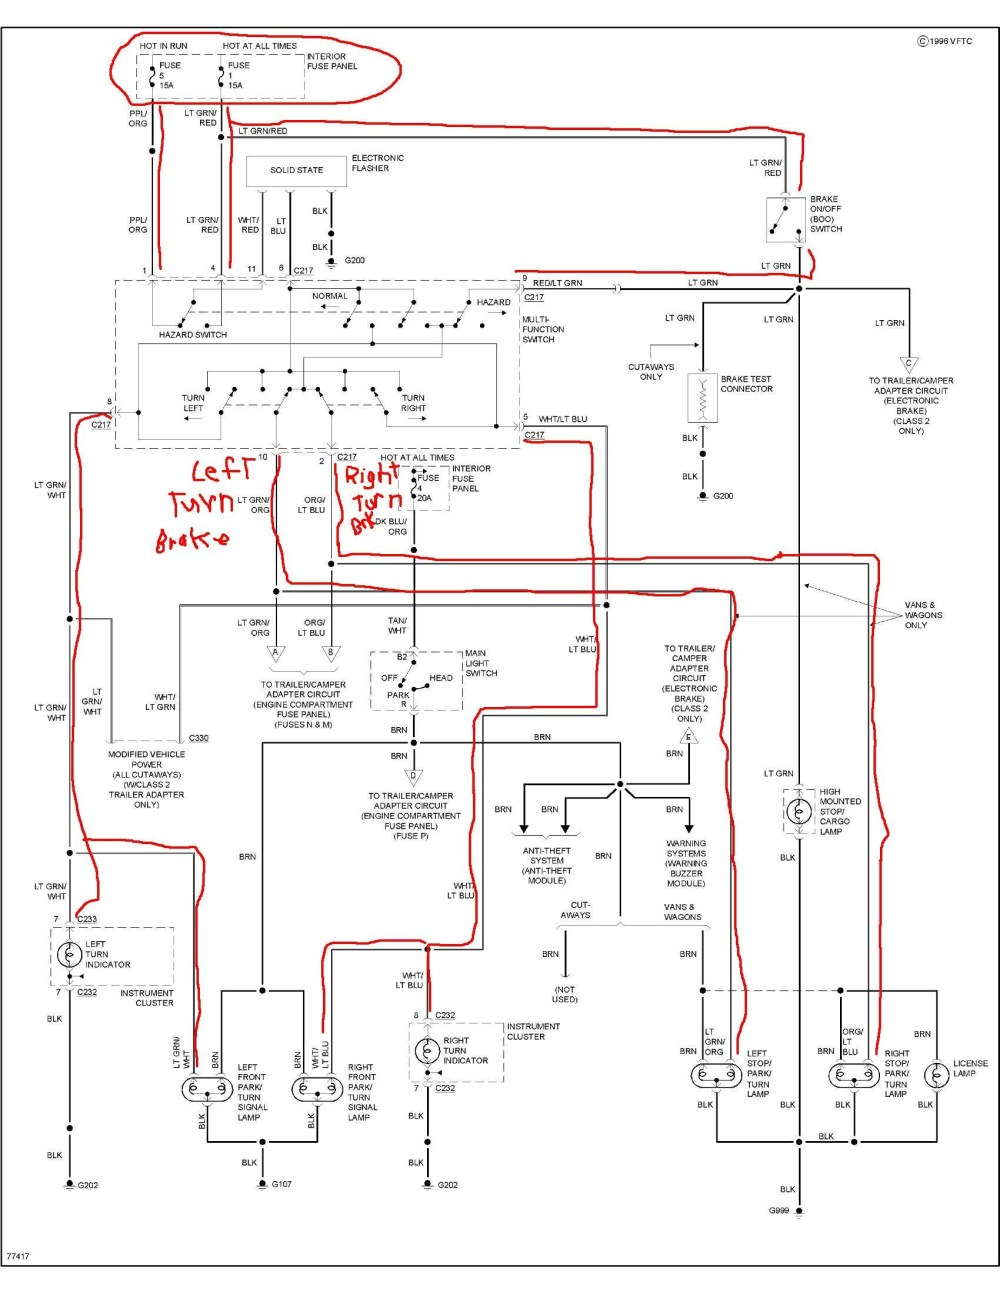 medium resolution of fuel supply system diesel diagram cruisers powerstroke systems along with diagrams and photos diesel fuel kind fuel system flow diagram courtesy mazda